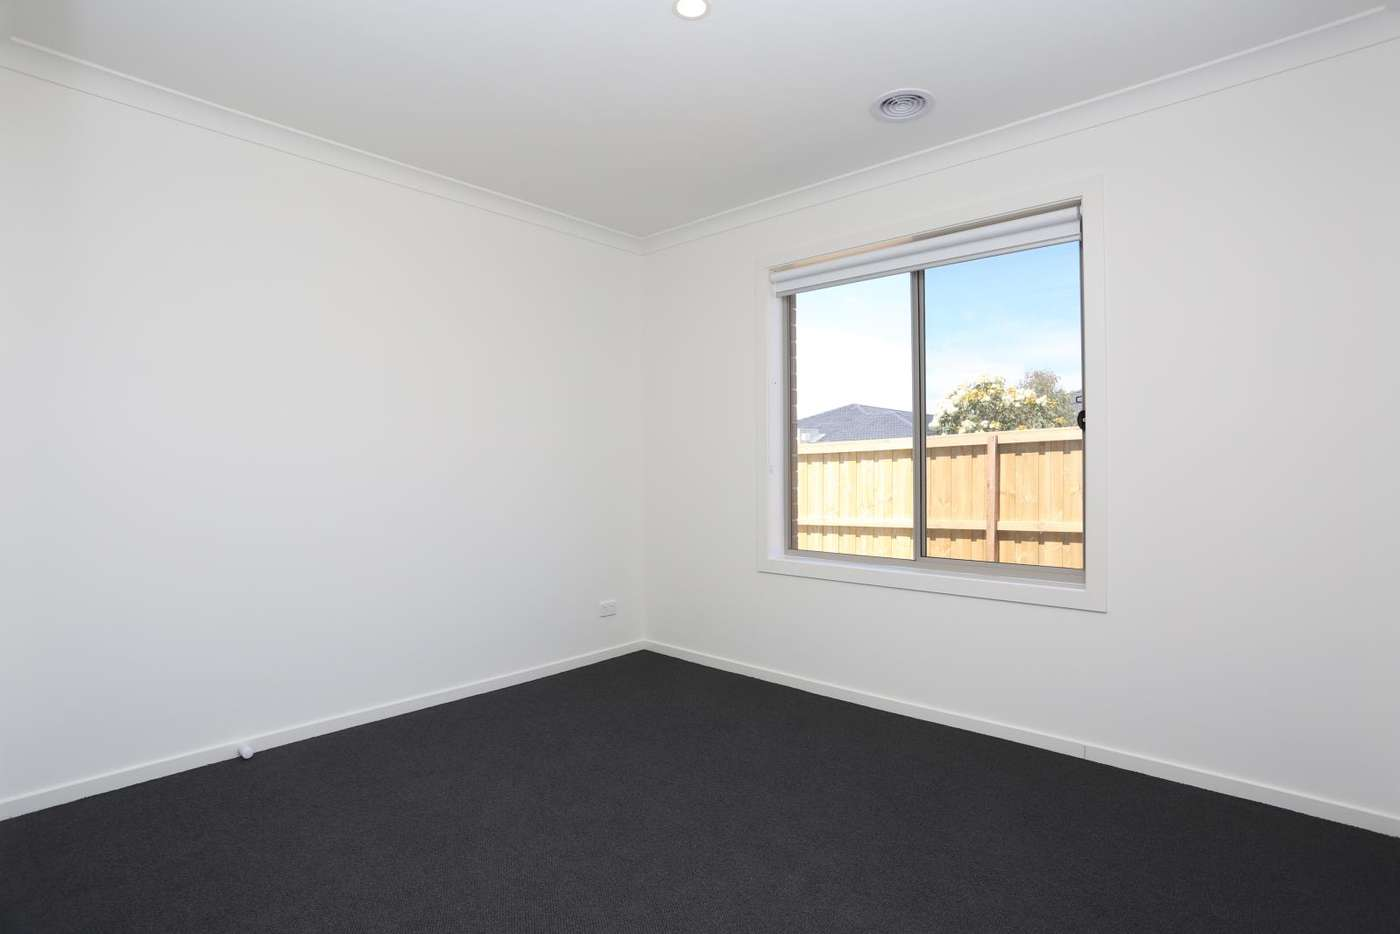 Sixth view of Homely house listing, 17 Oliver Street, Doreen VIC 3754